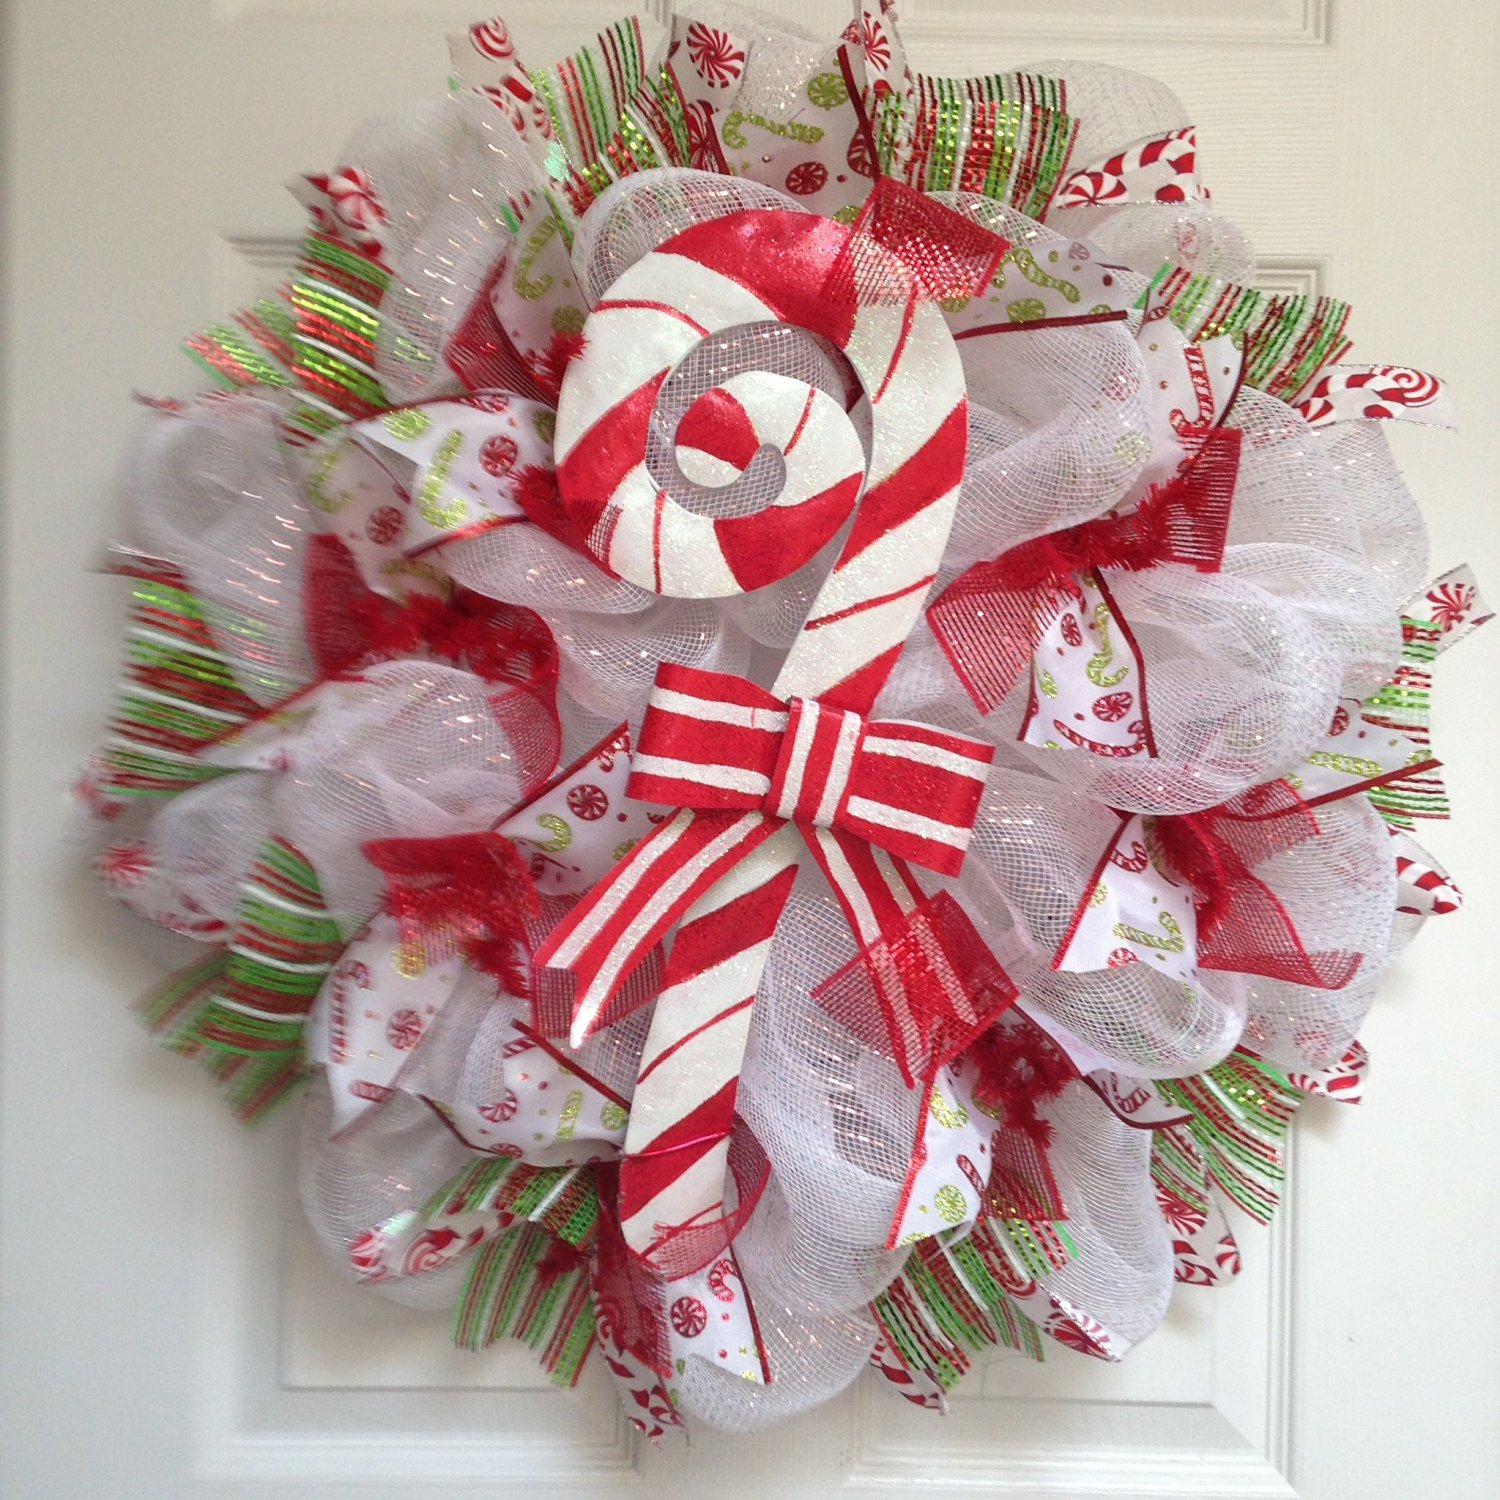 Cheap Holiday Candy Cane Find Holiday Candy Cane Deals On Line At